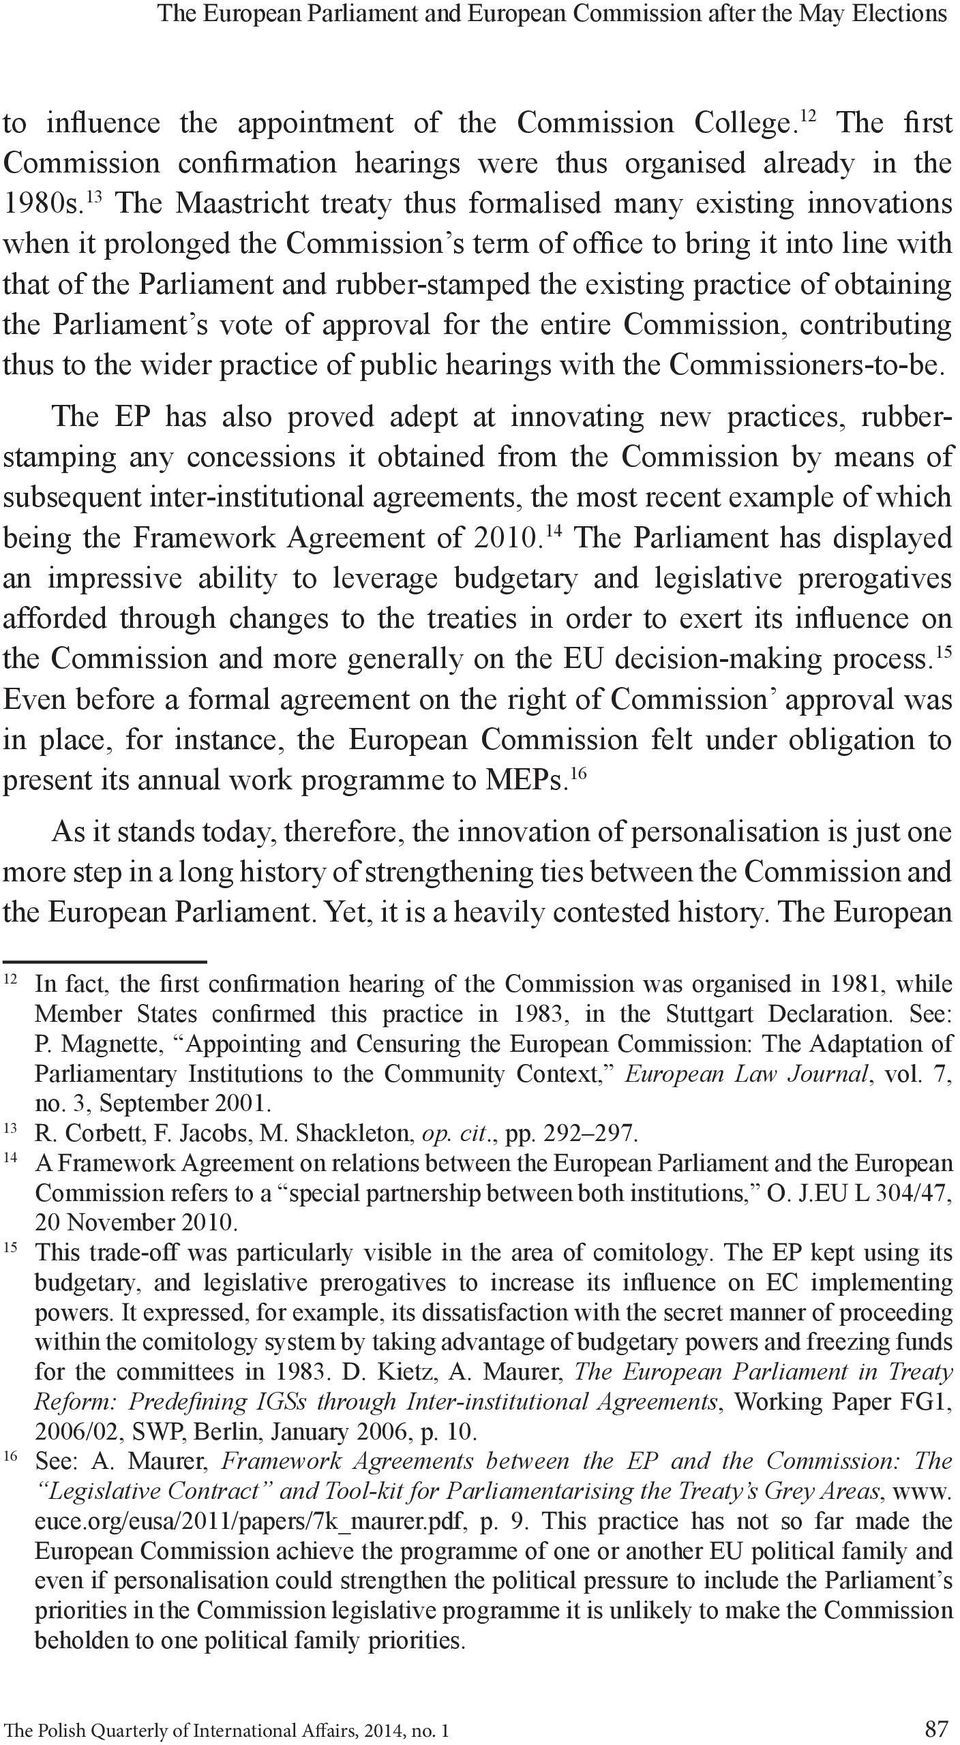 13 The Maastricht treaty thus formalised many existing innovations when it prolonged the Commission s term of office to bring it into line with that of the Parliament and rubber-stamped the existing